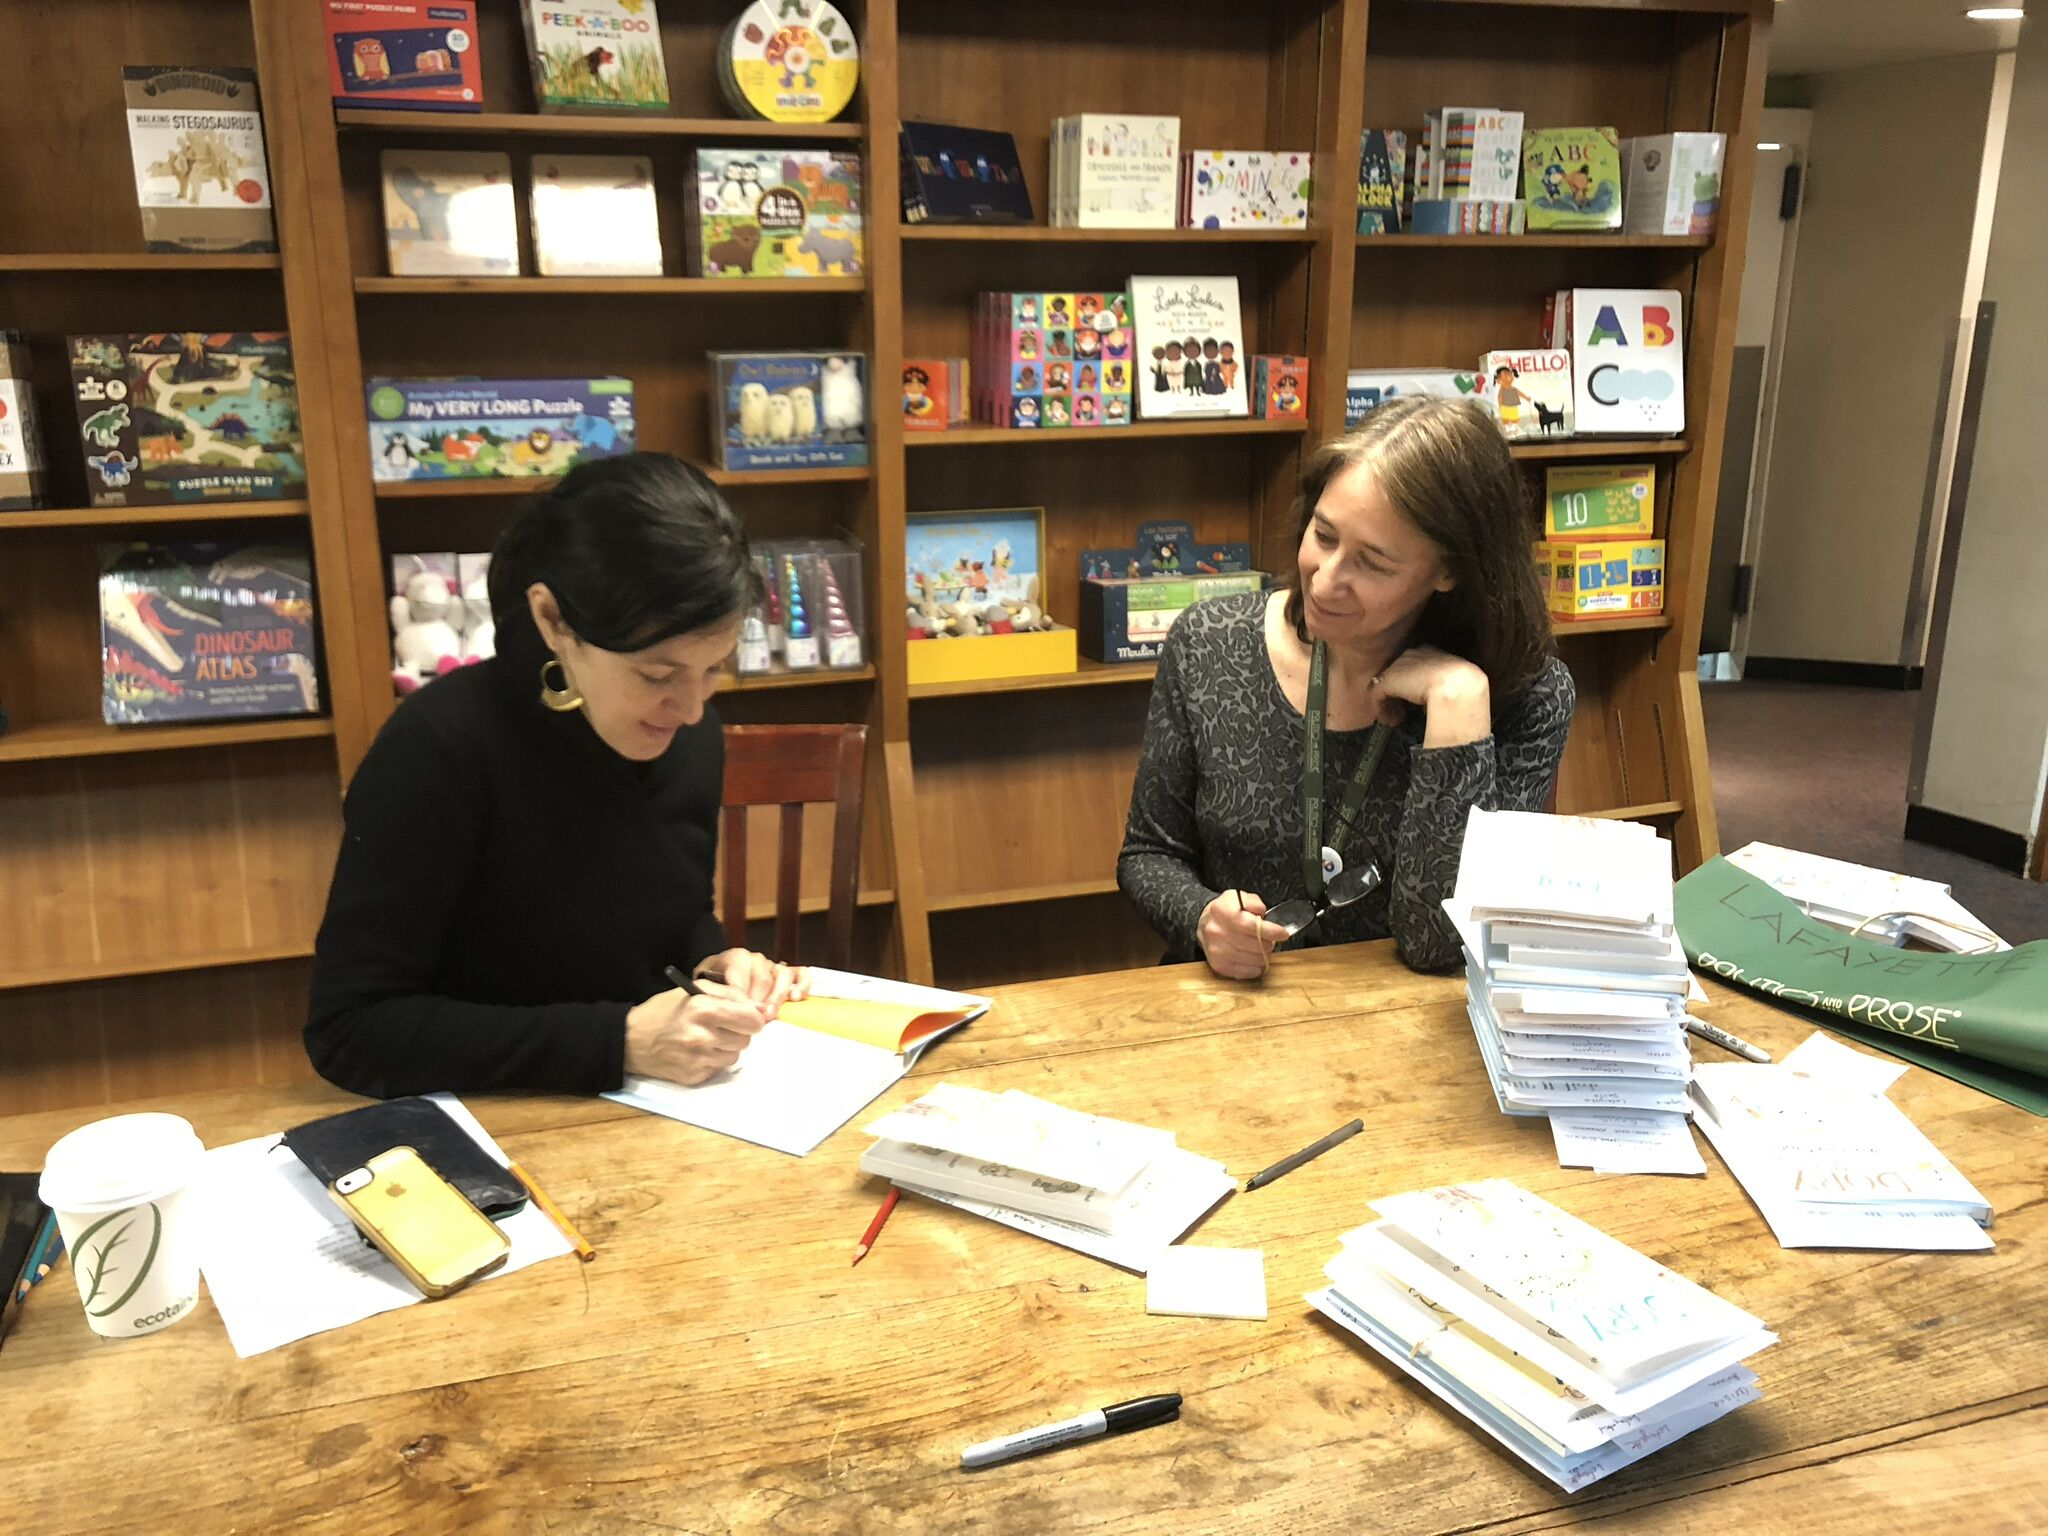 Abby Hanlon at Politics and Prose 2018.03.08 (15)_preview.jpeg